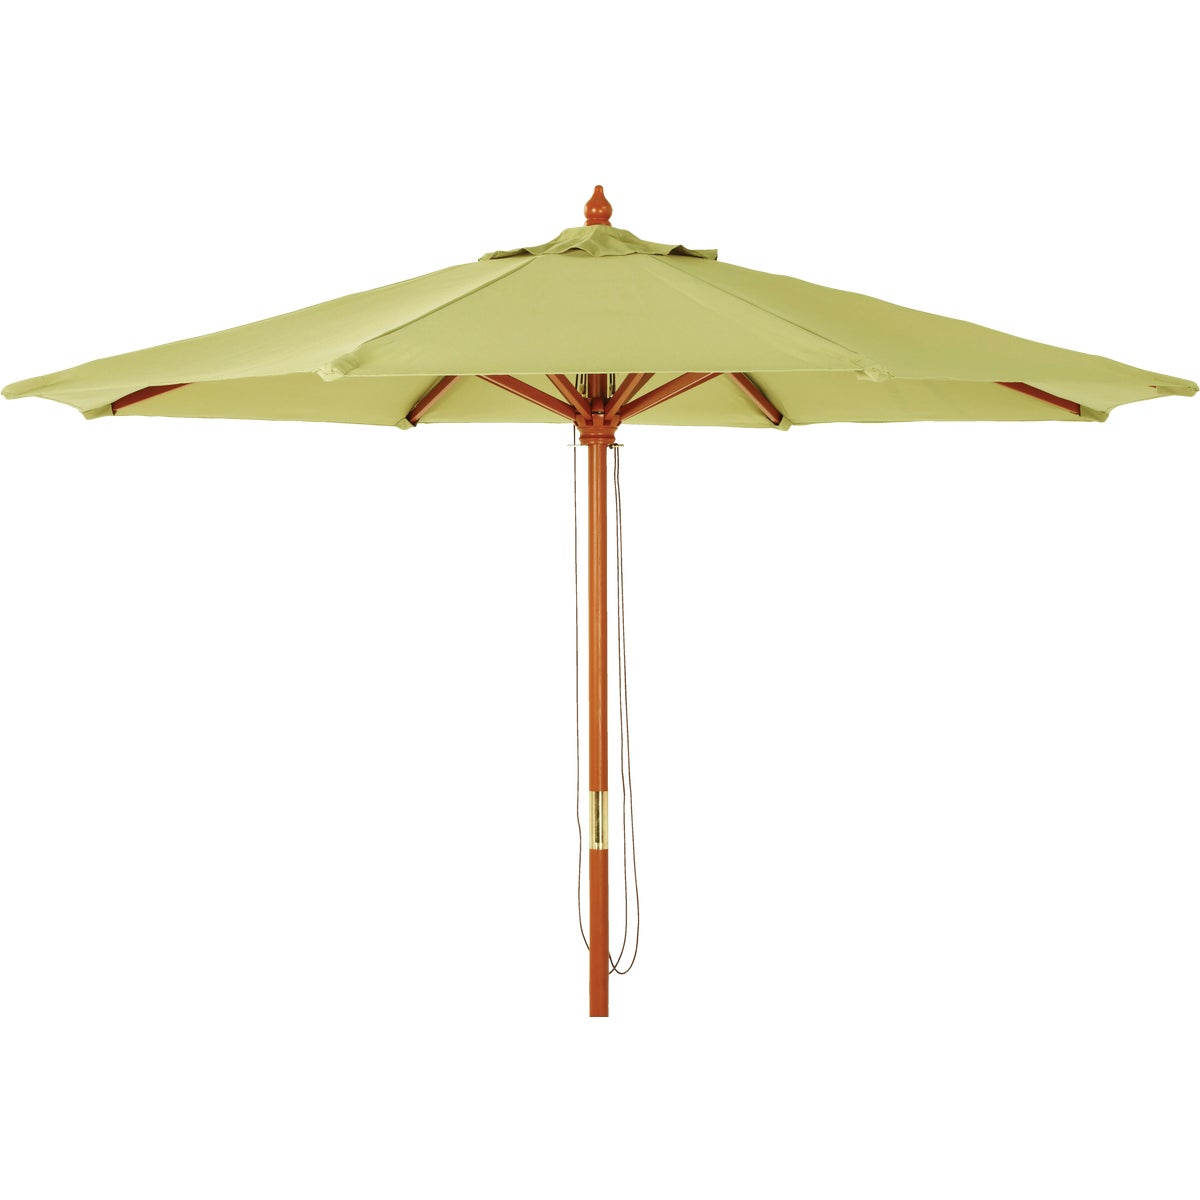 9' MARKET SAGE UMBRELLA - TJWU-003A-270-SGE by Do it Best